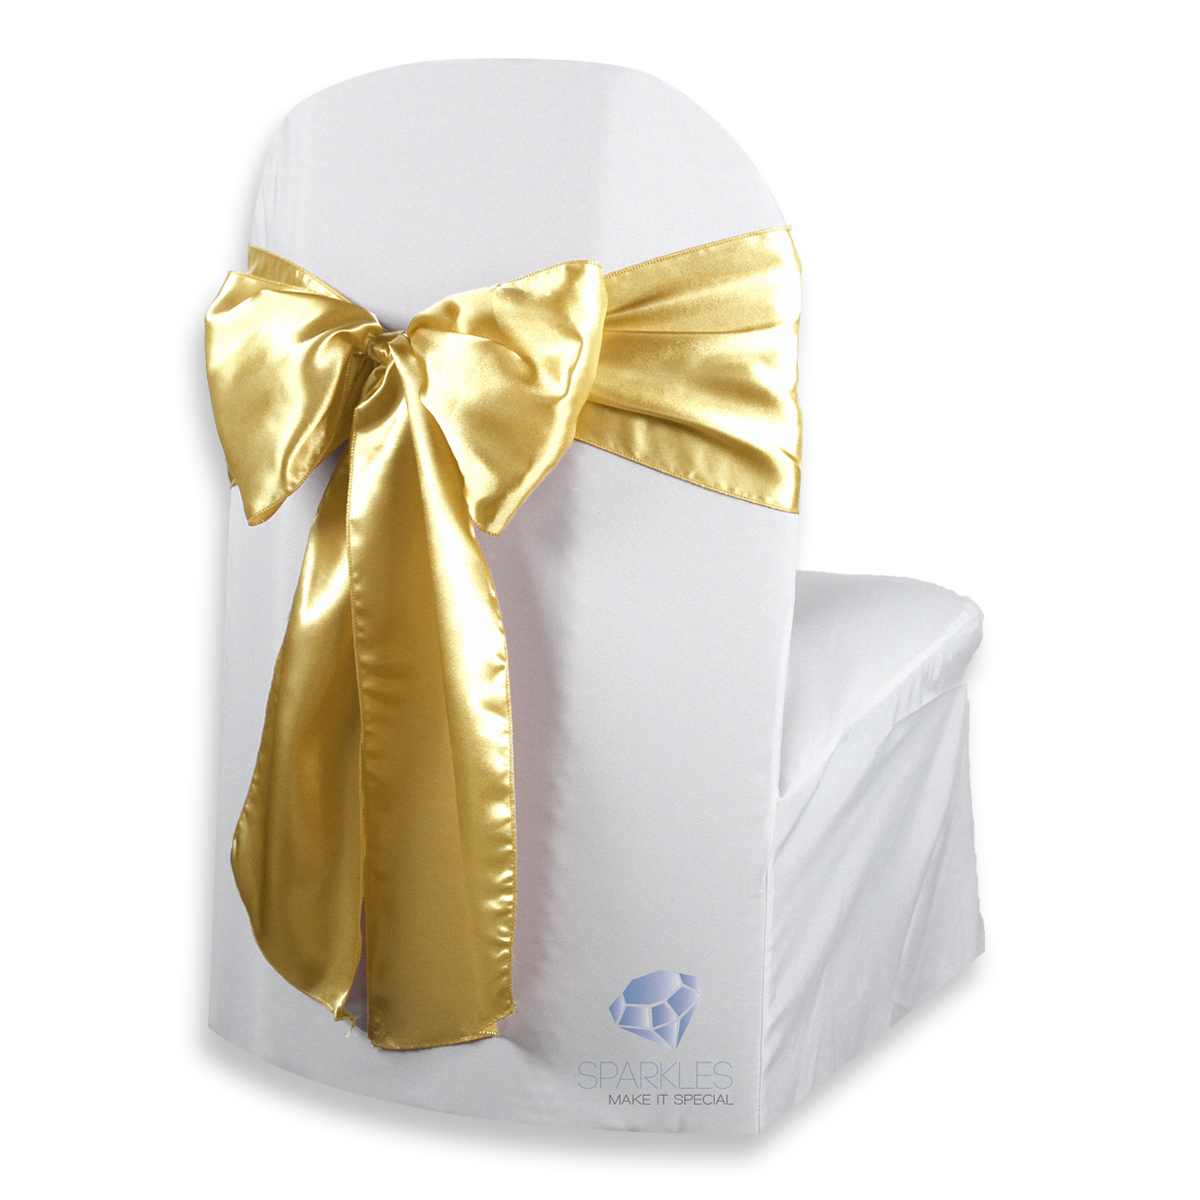 chair covers and bows ebay build adirondack kit 50 pcs satin cover bow sash 108 quotx8 quot wedding party